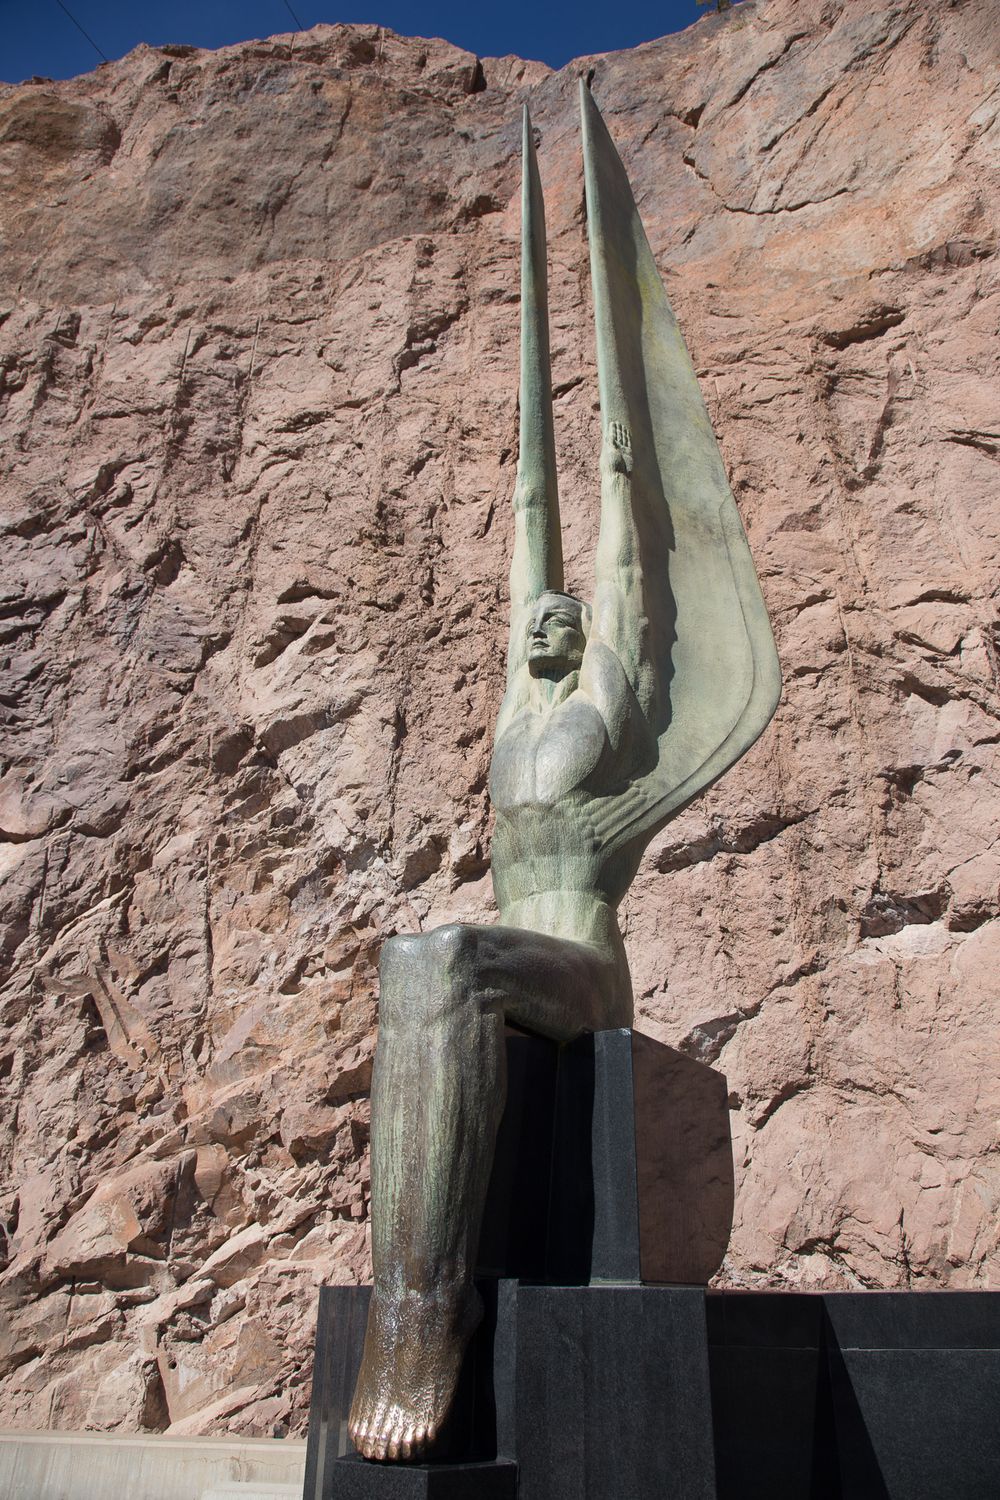 One of the great Art Deco statues outside the Dam. You're supposed to rub the feet for luck.